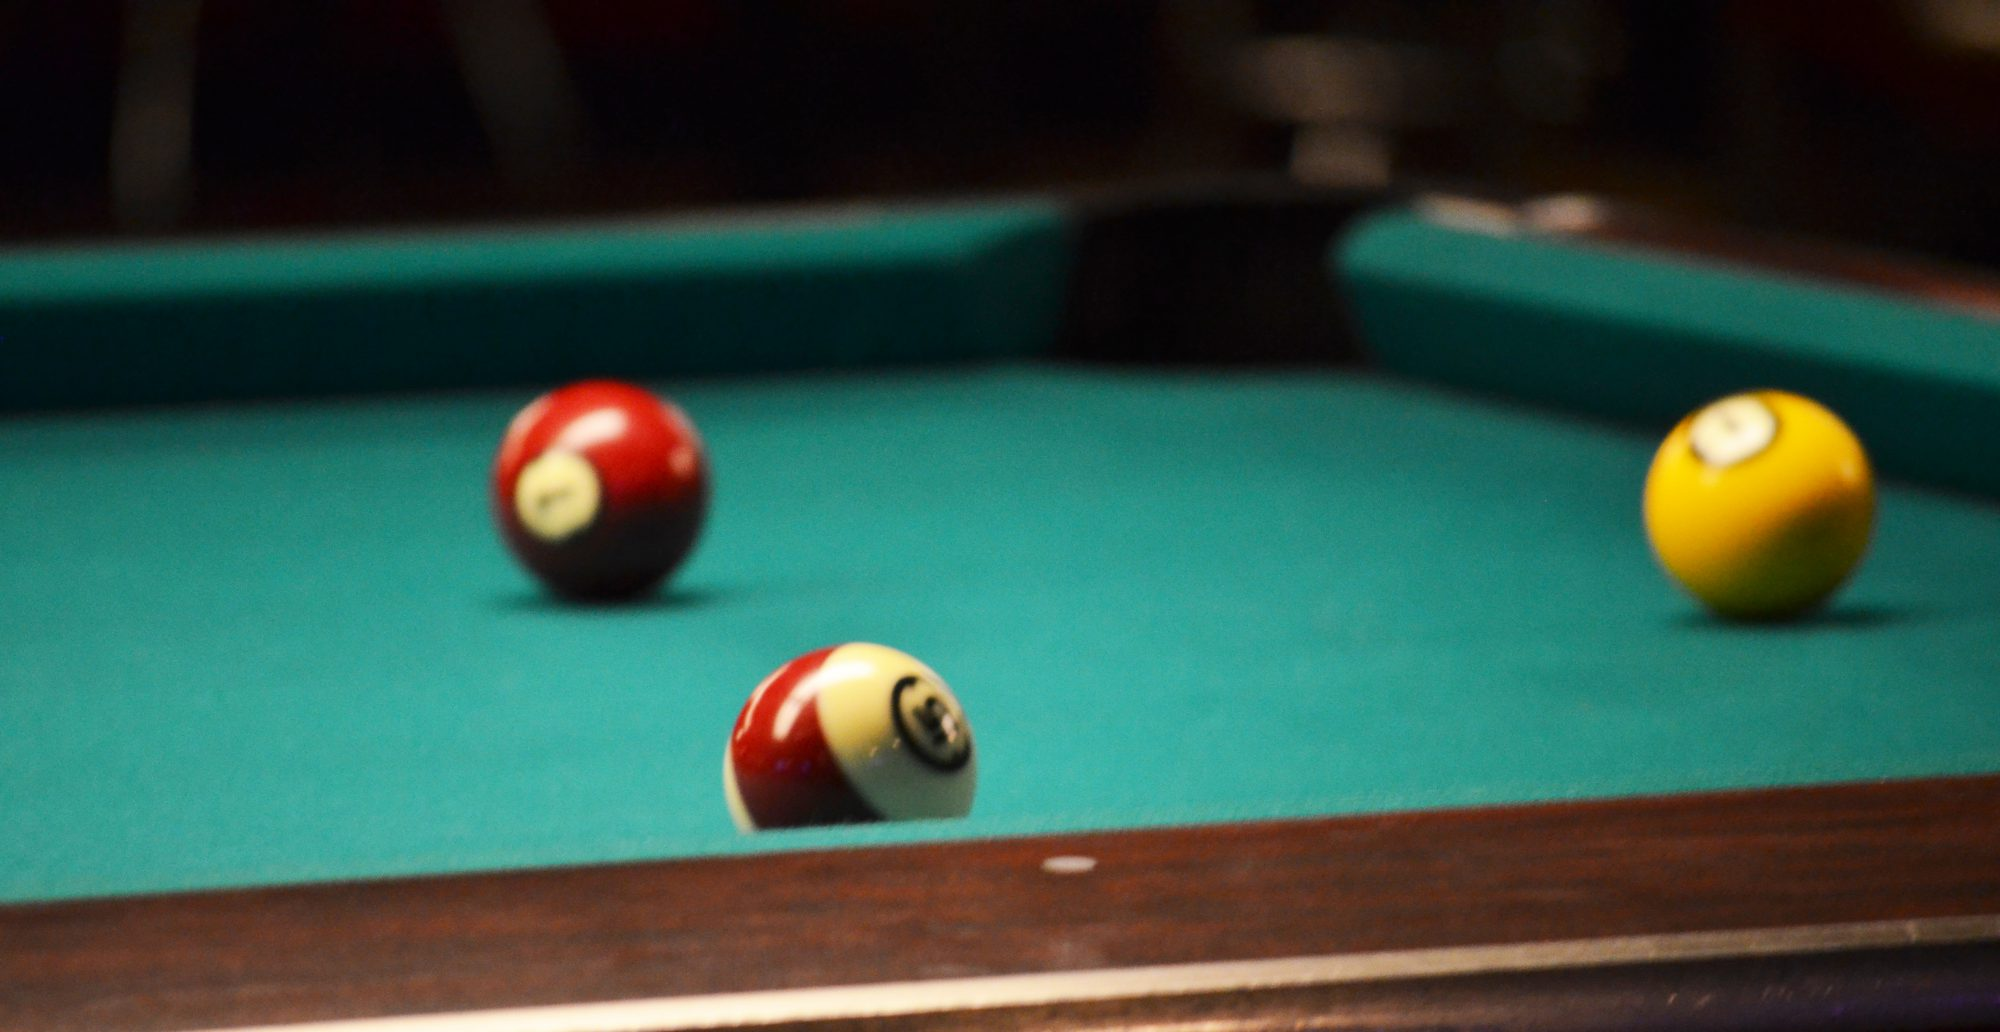 High House Billiards: Open 1pm to 10pm 365 days a year